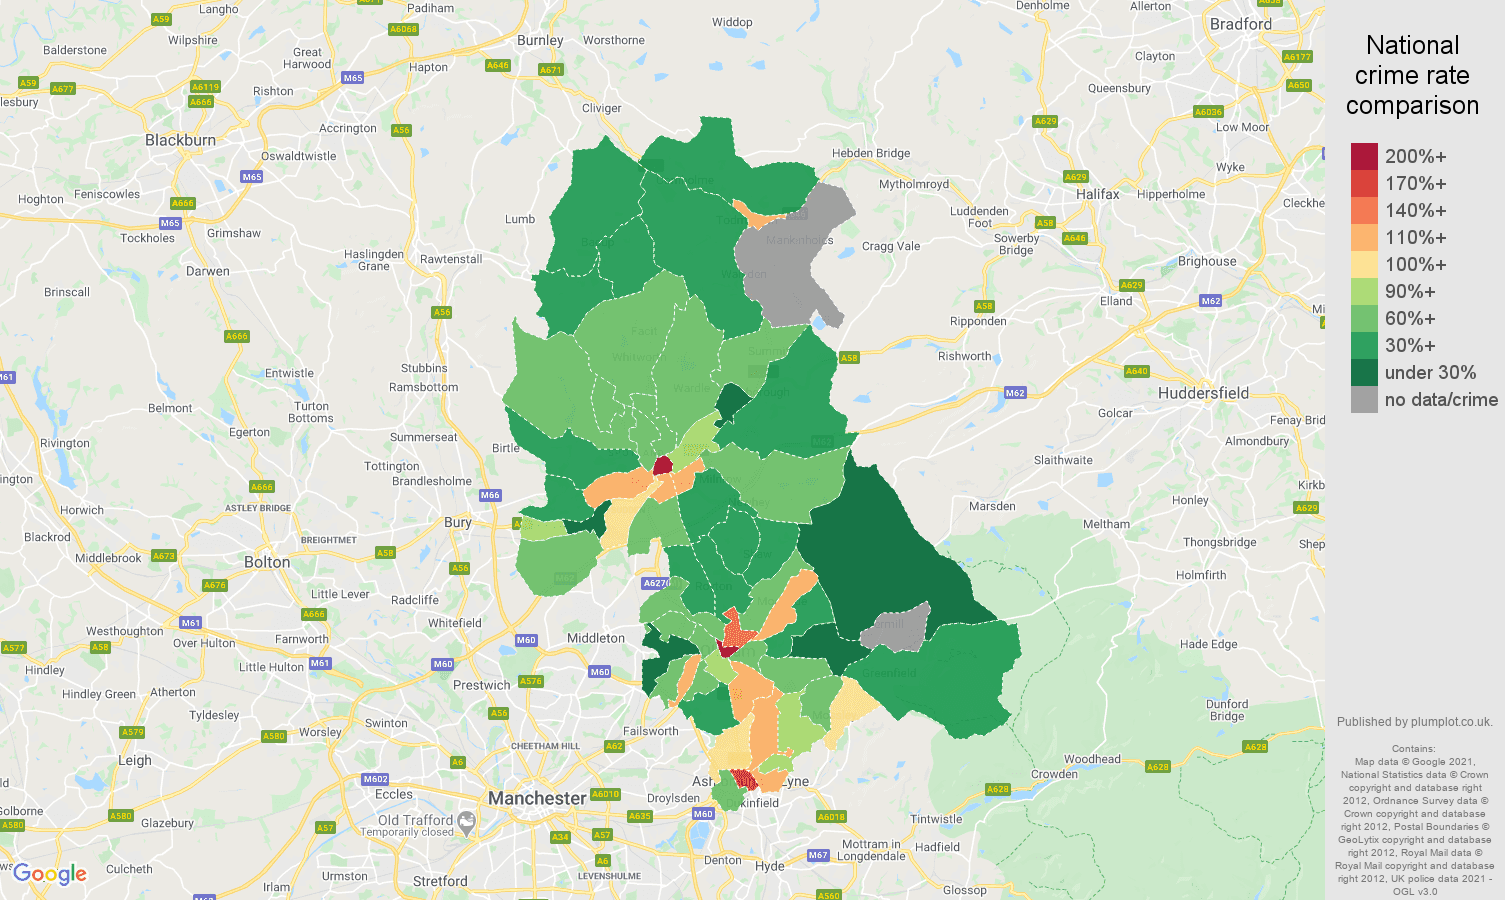 Oldham drugs crime rate comparison map